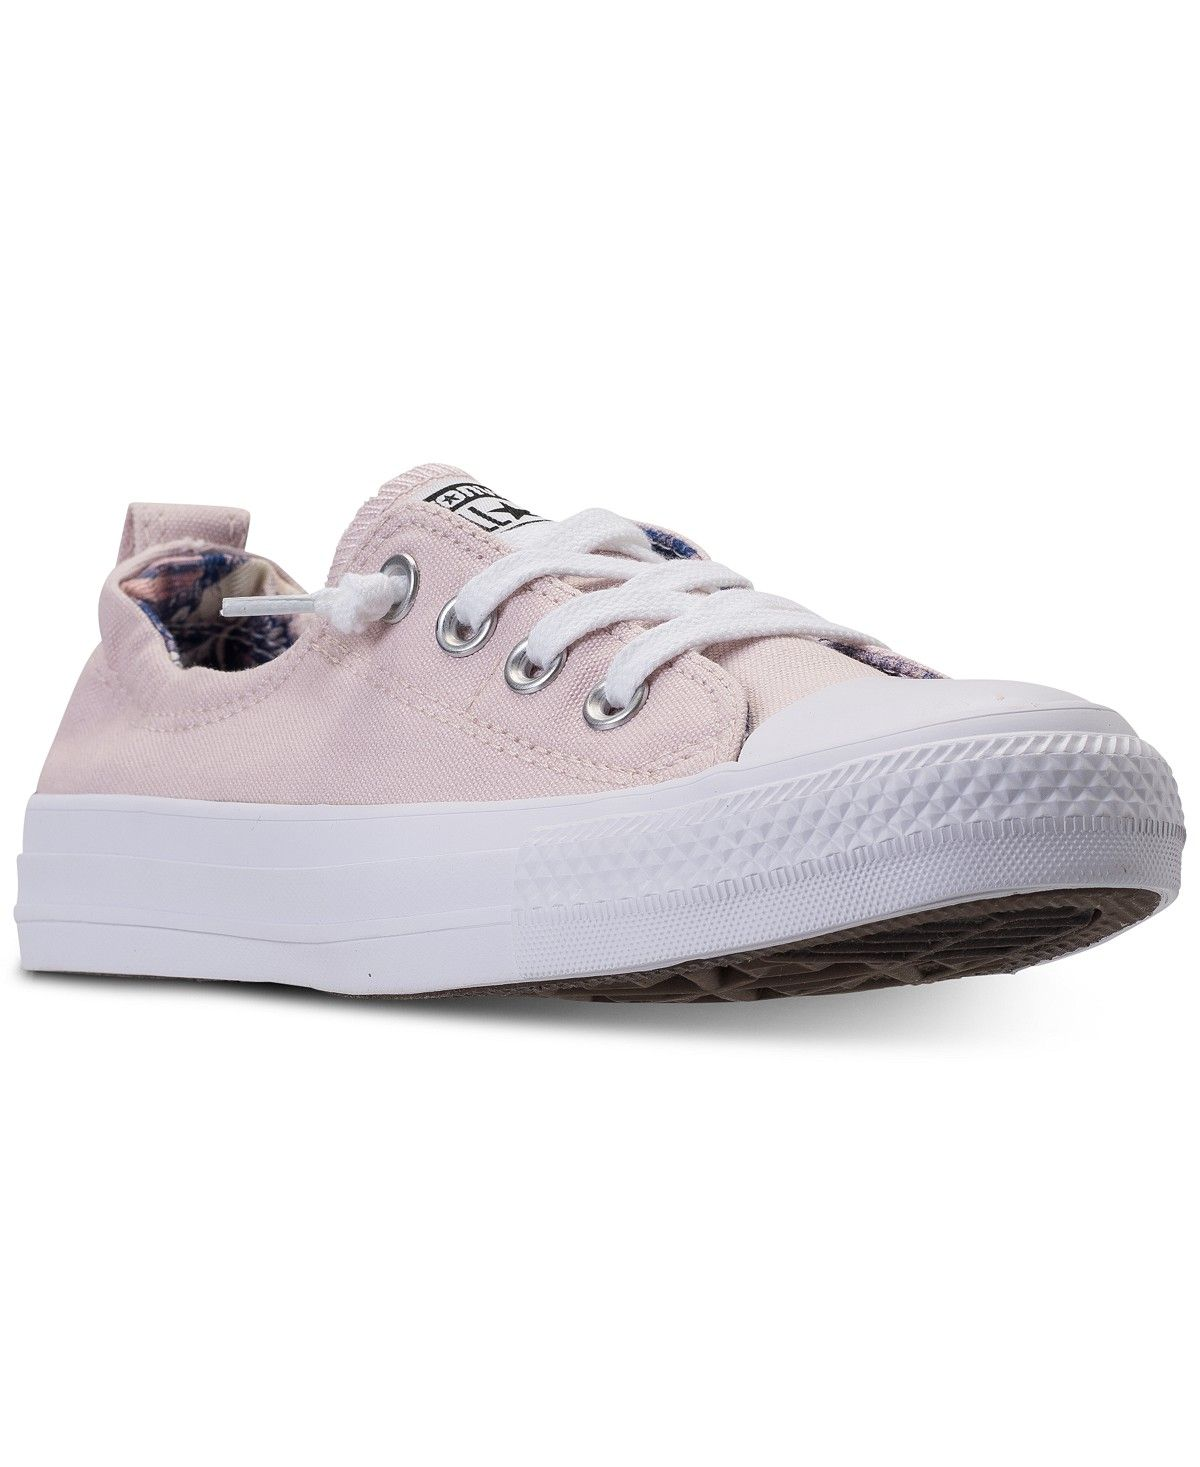 Converse Women's Chuck Taylor Shoreline Ox Casual Sneakers from Finish Line ROZ6rcOD